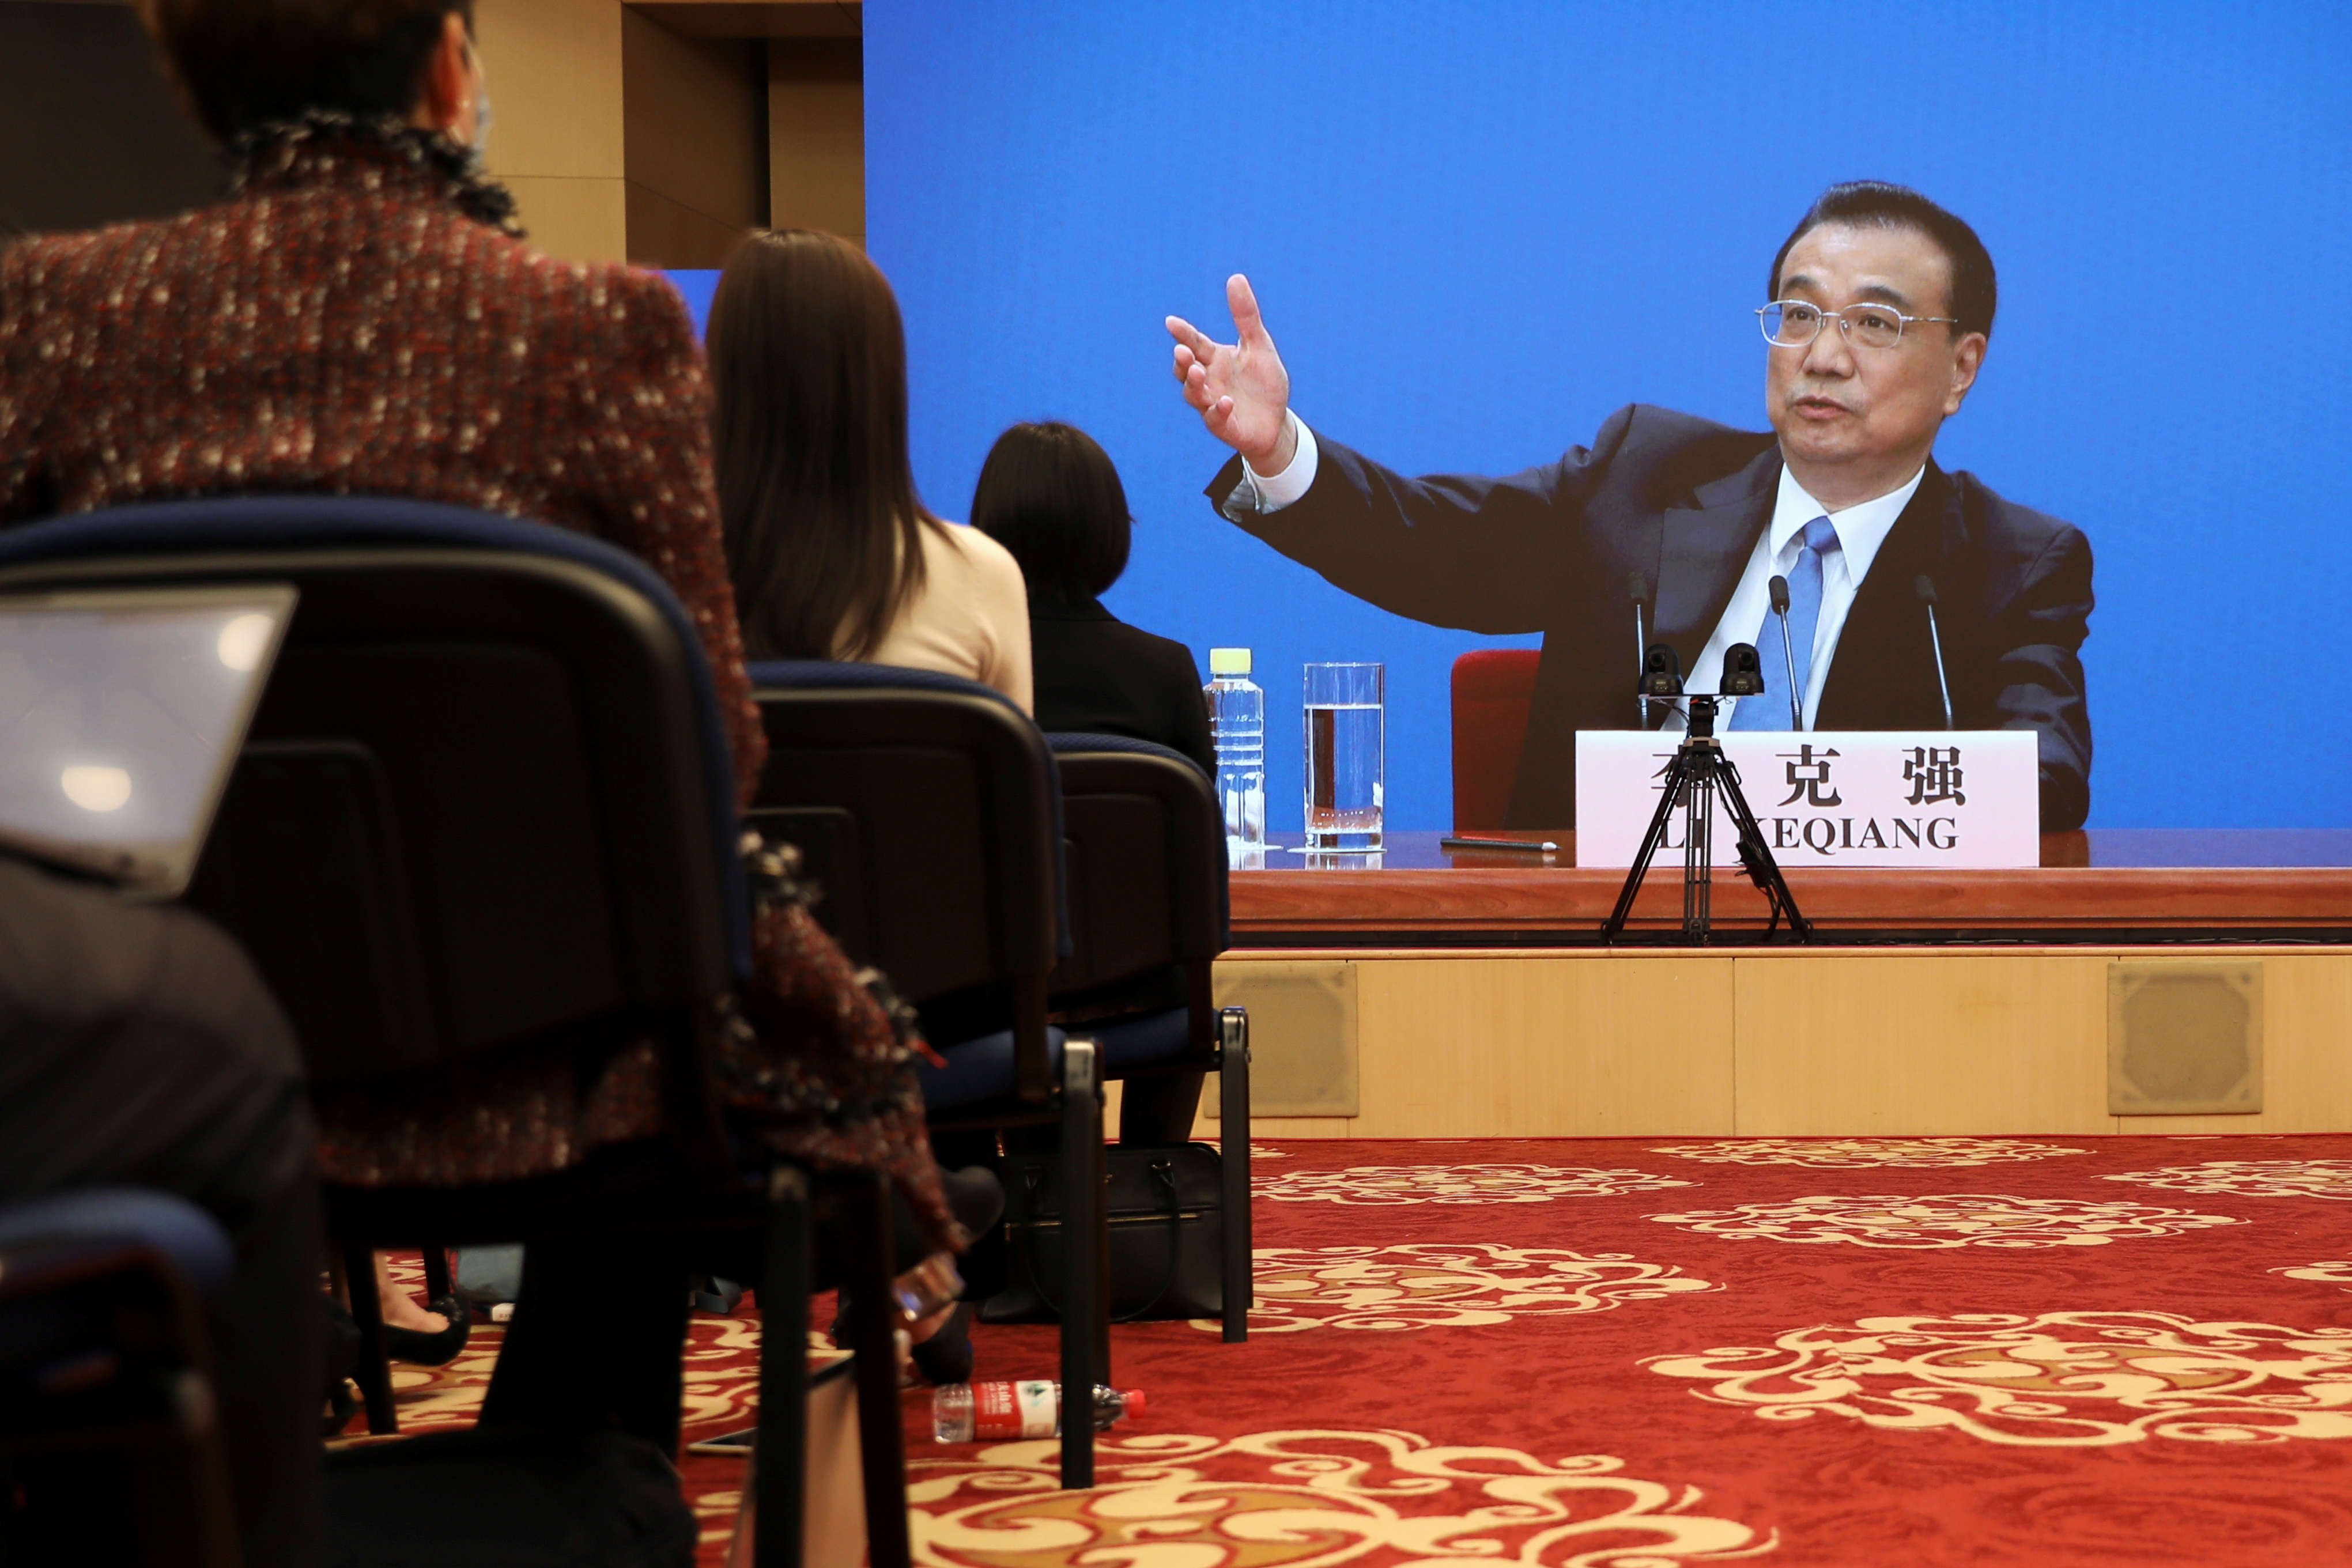 Chinese Premier Li Keqiang is seen on a screen during a news conference held via video link, following the closing session of the National People's Congress (NPC) in Beijing, China March 11, 2021. REUTERS/Martin Pollard